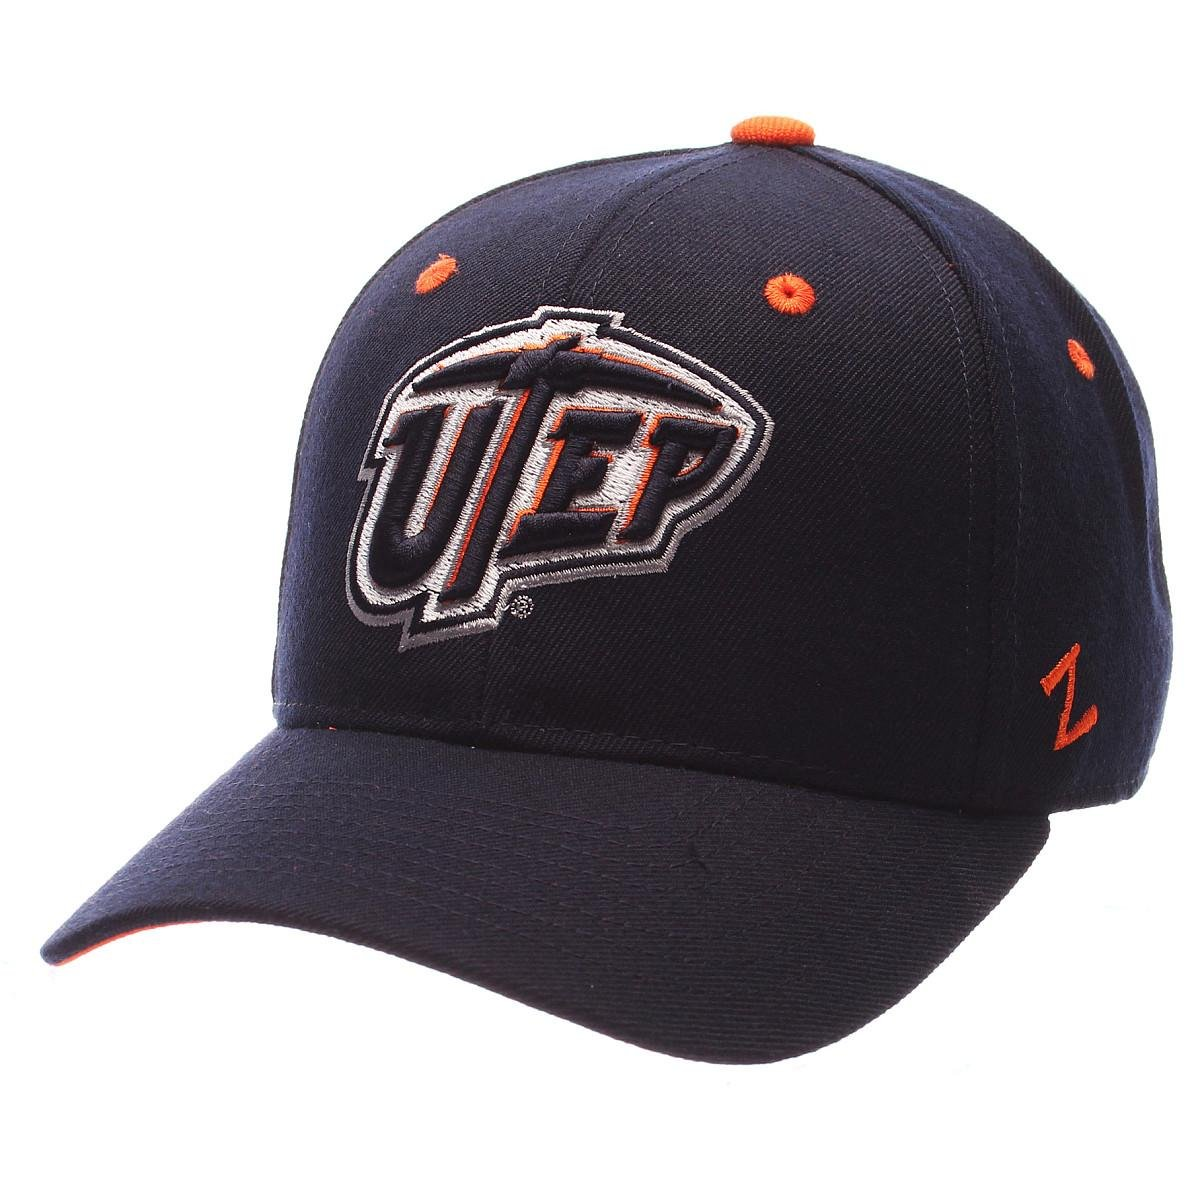 ZephyrメンズUTEP Miners Dh Zwool Fitted Hat 7.5  B00C3Z5OZ6